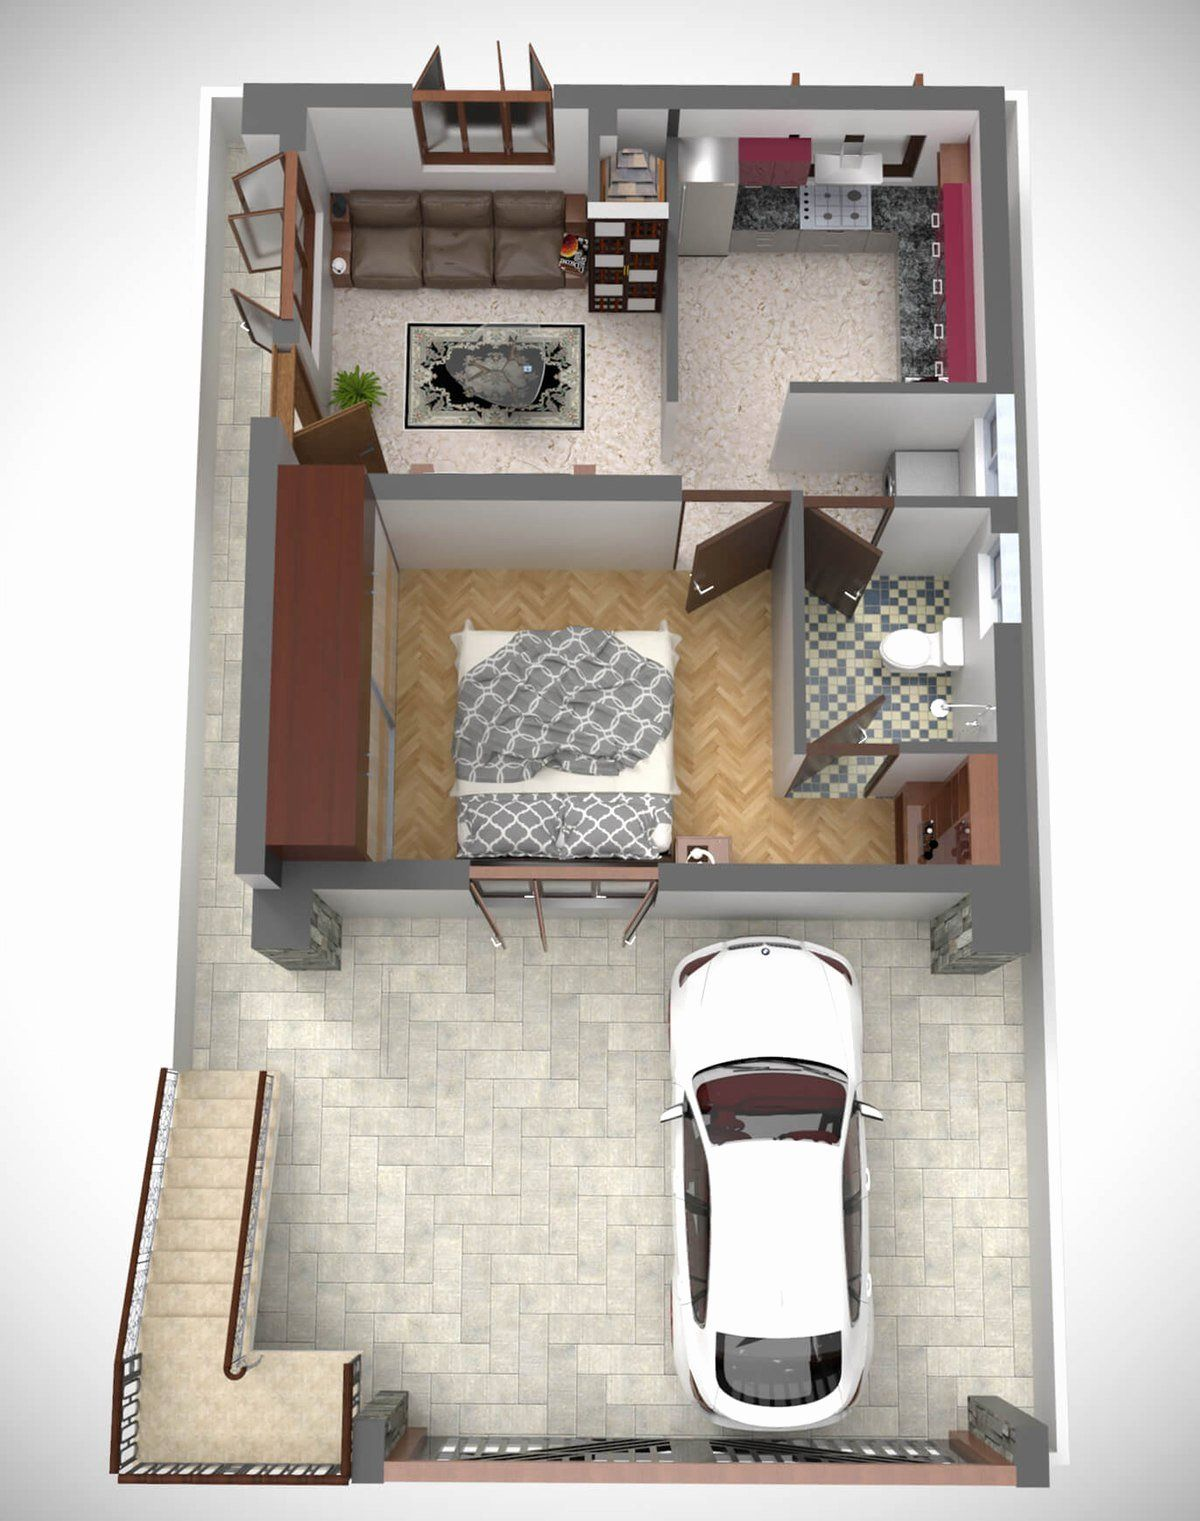 Create Bedroom Floor Plan Beautiful 3d Floor Plan Home Design Plans 3d House Plans Floor Plan Design